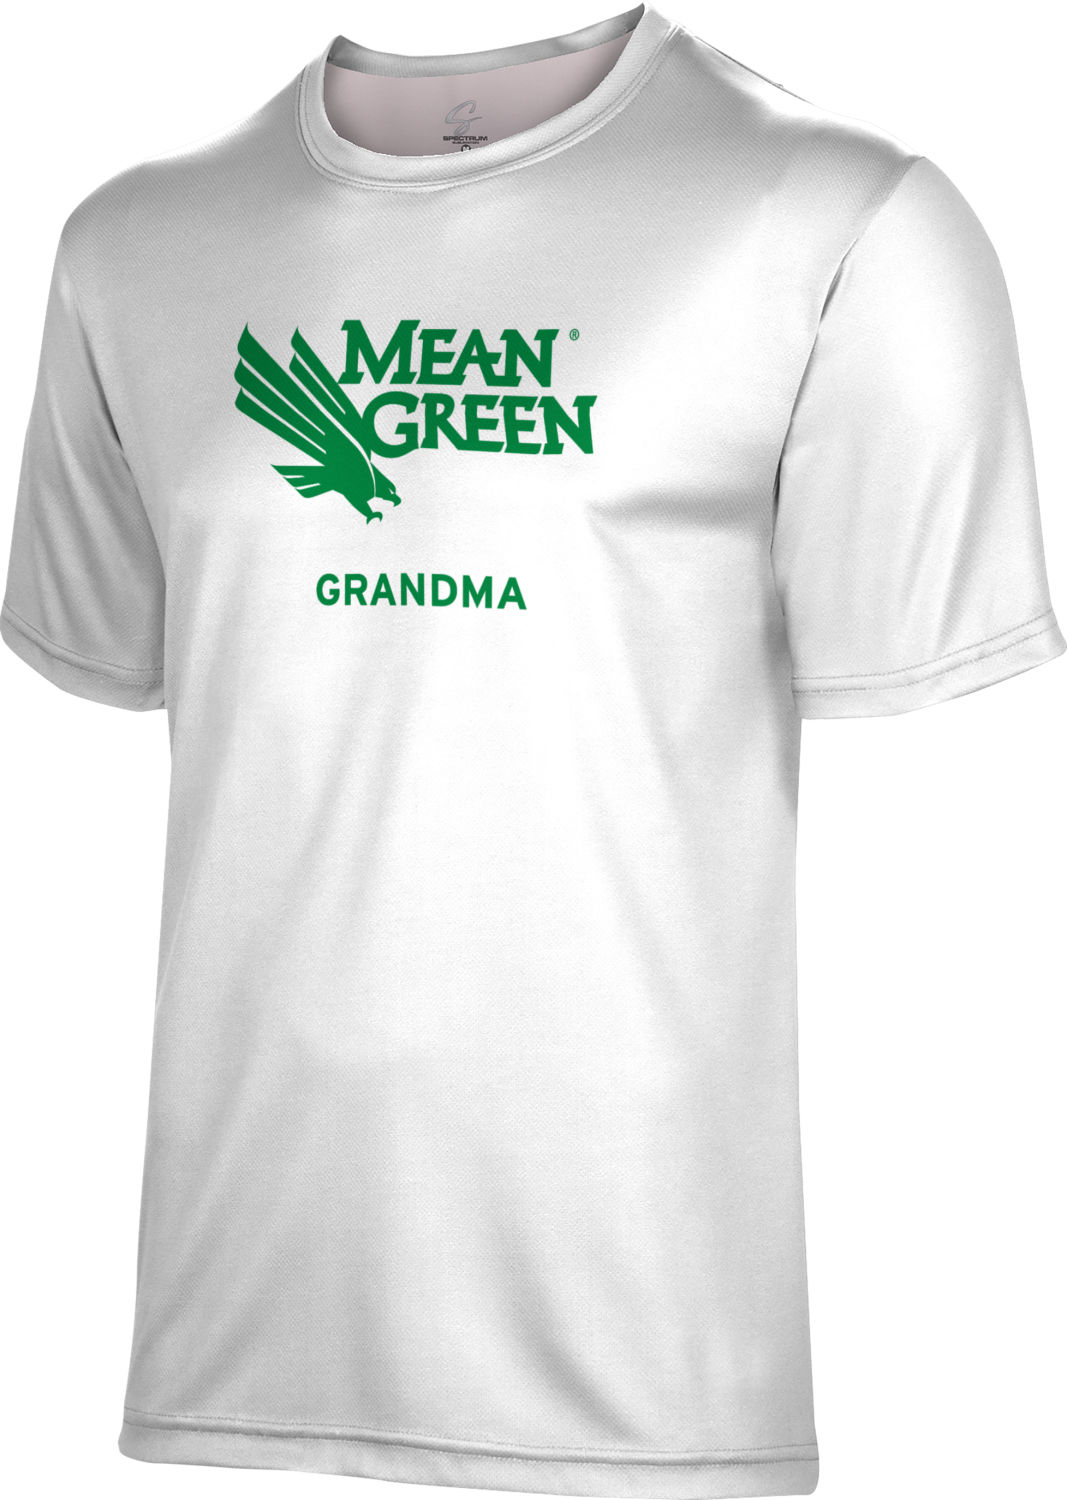 Spectrum Grandma Unisex 50/50 Distressed Short Sleeve Tee